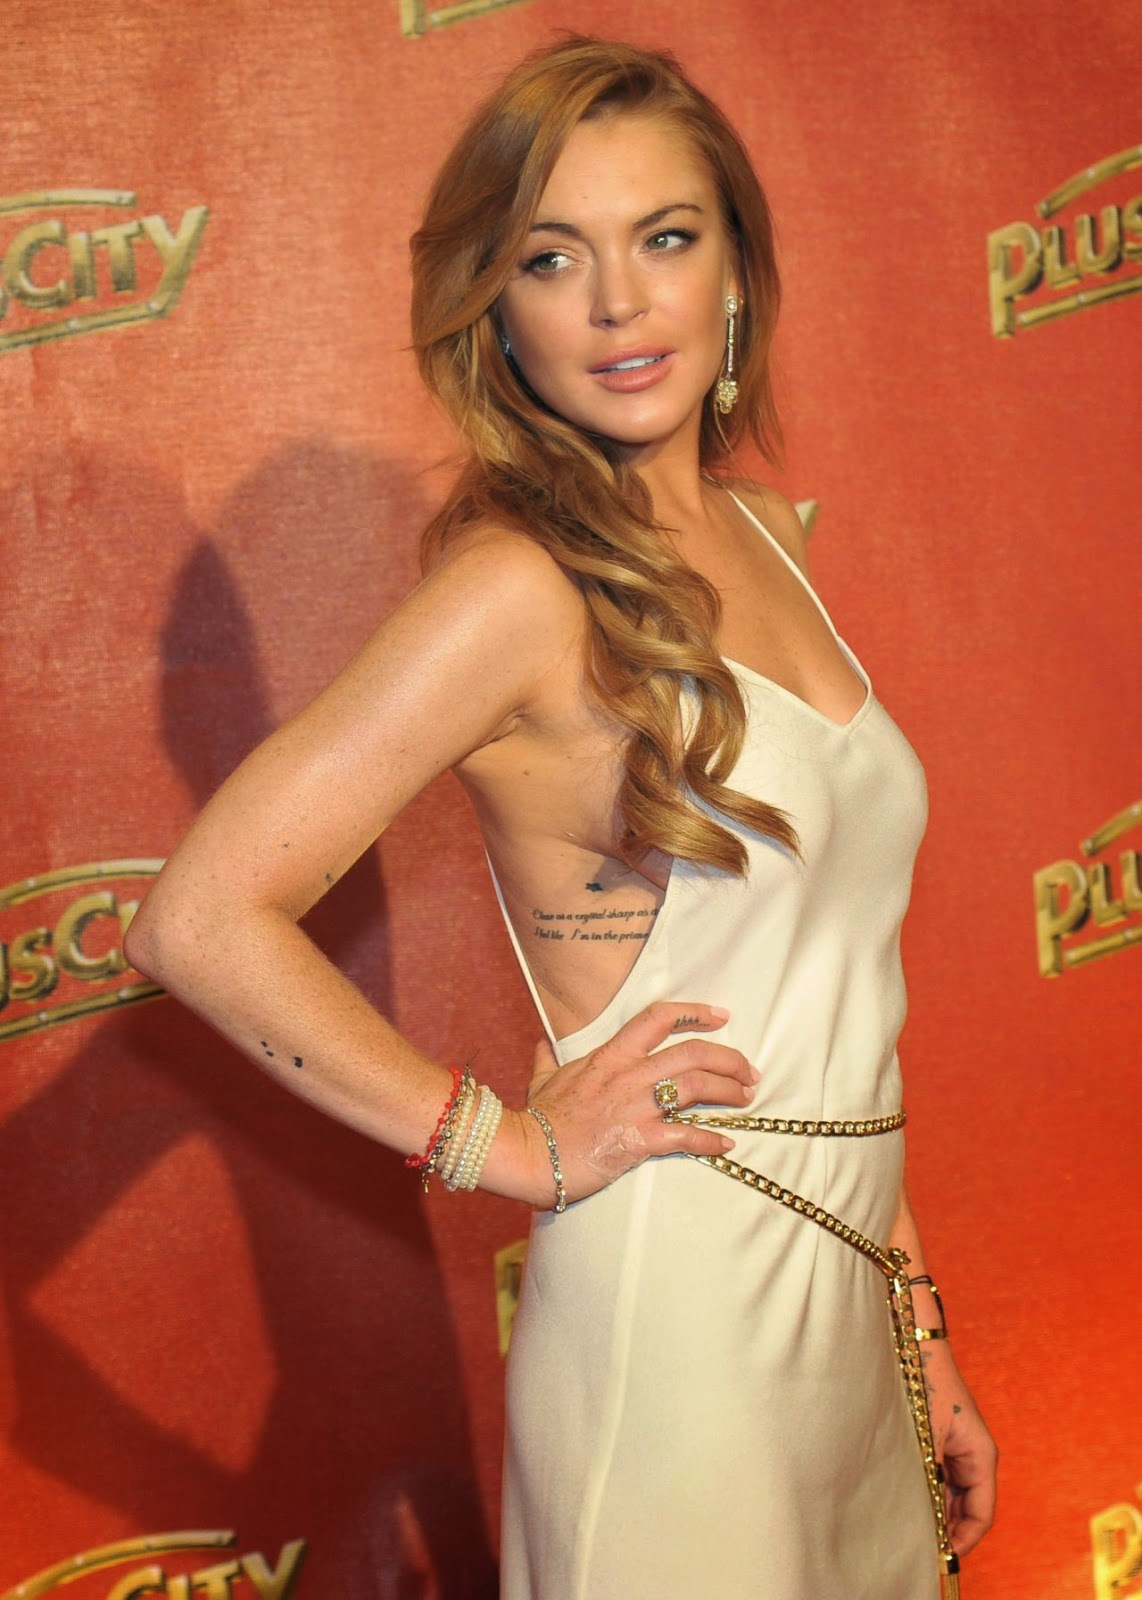 Lindsay Lohan goes braless in a slinky white gown at 'The White Party' in Austria